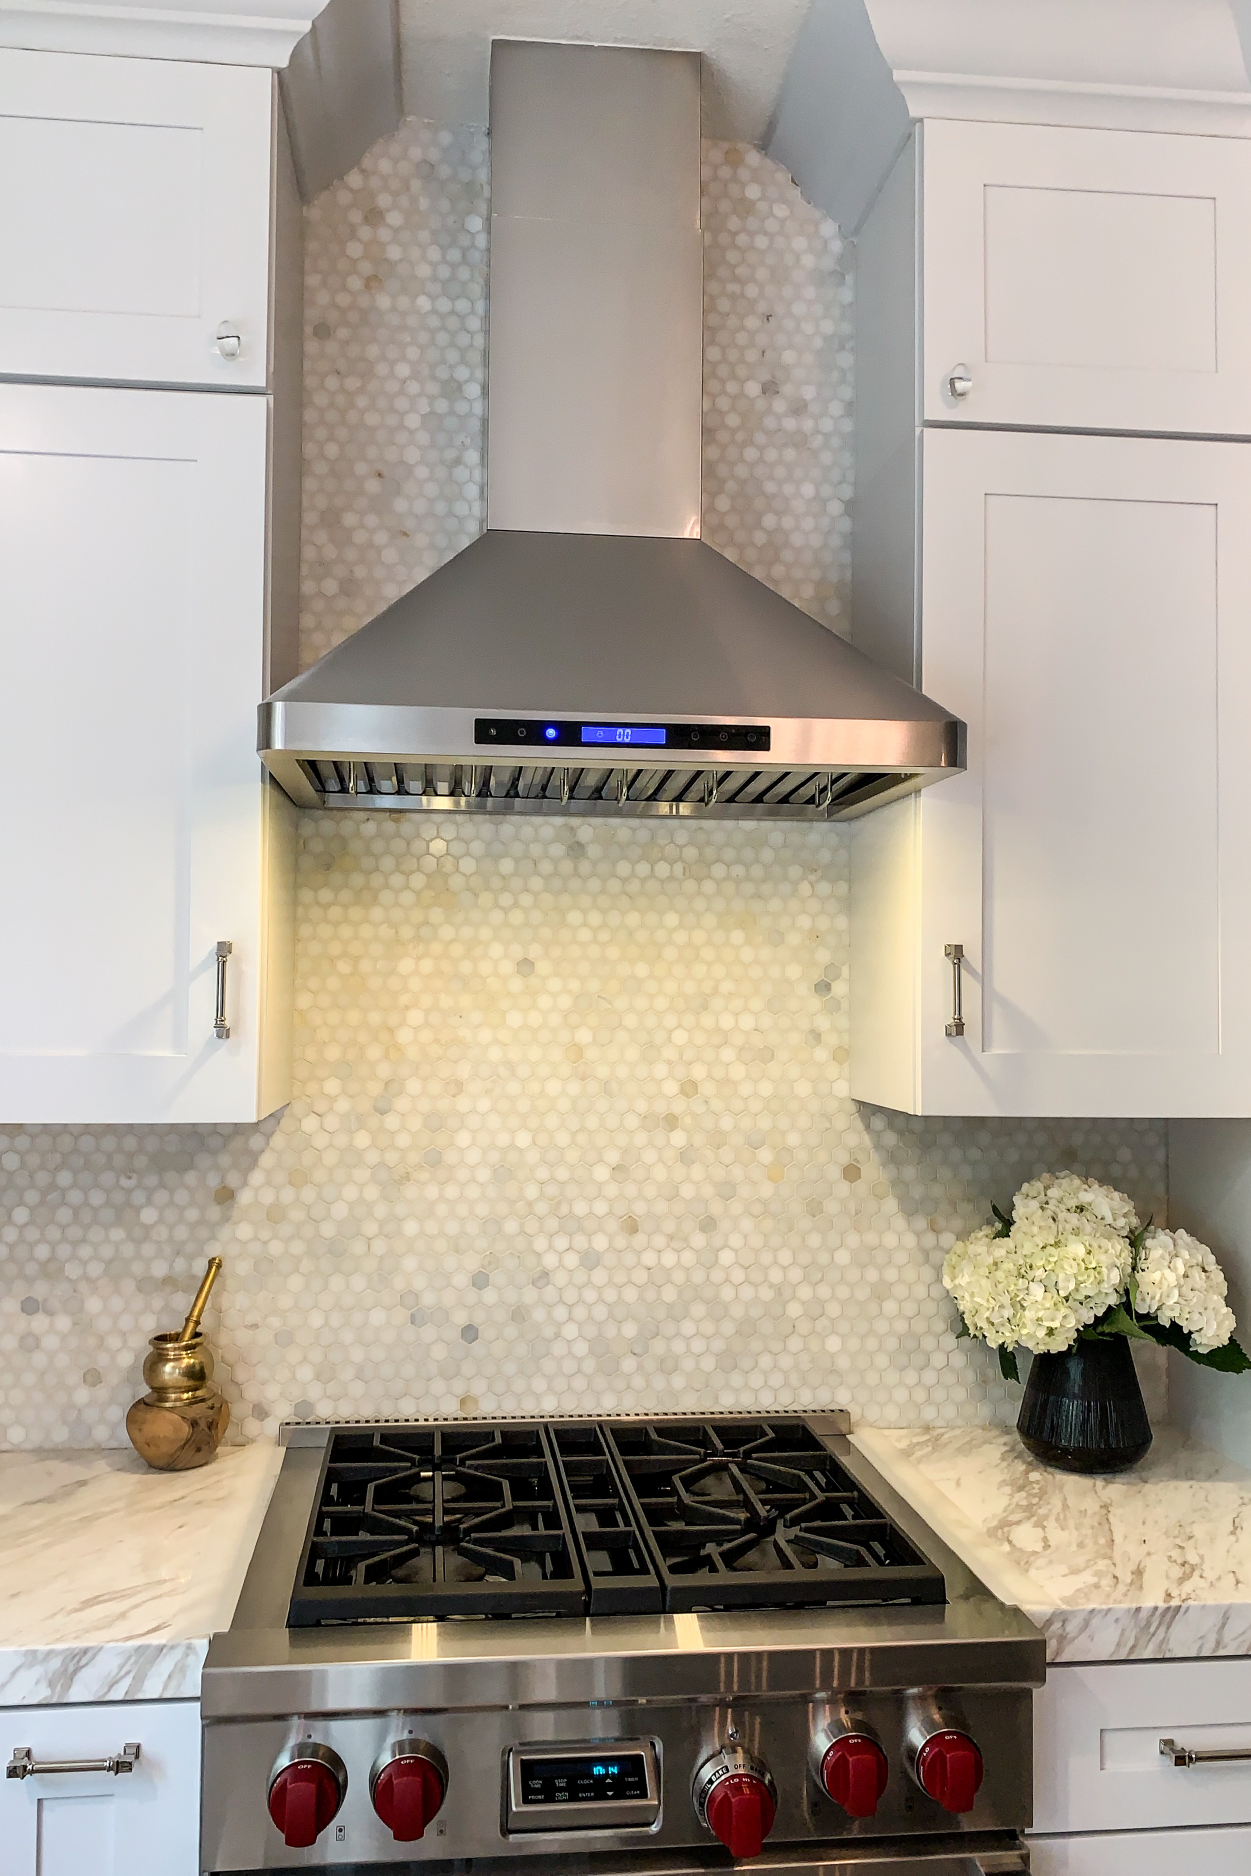 Best Range Hoods For Gas Stoves Range Hood Gas Stove Best Range Hoods